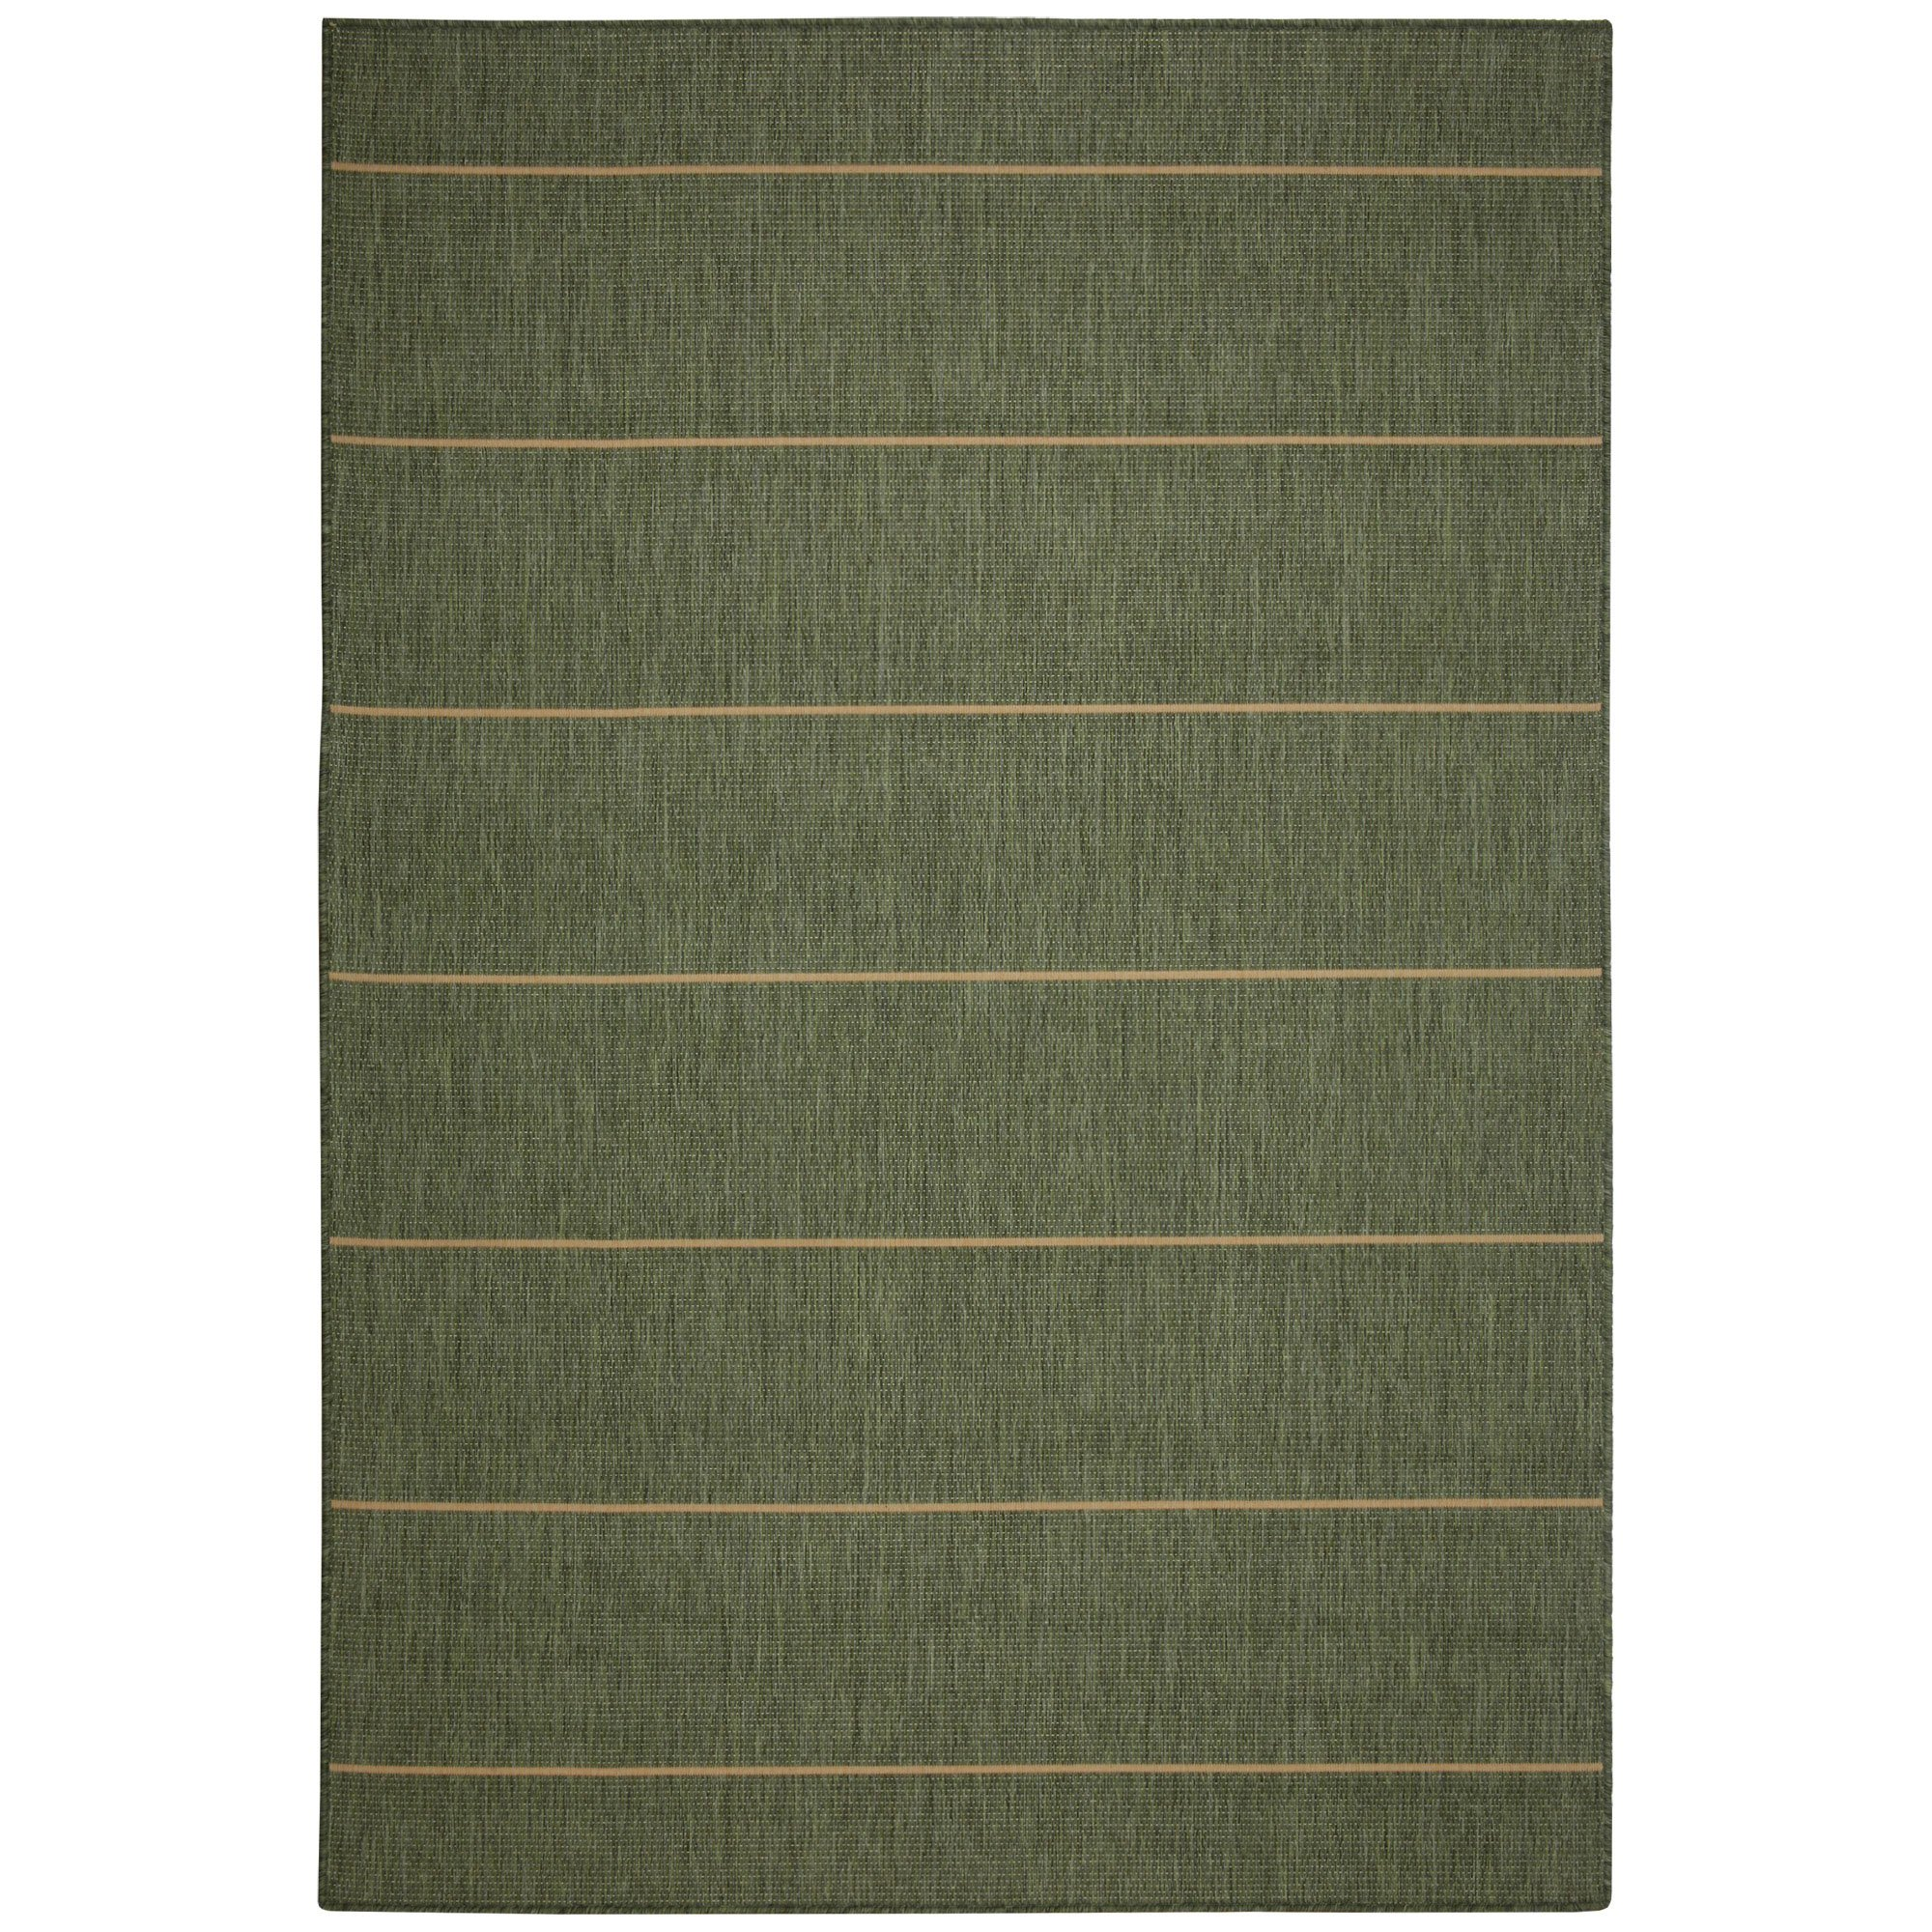 foam ka kids green ideas trellis products rug design sea